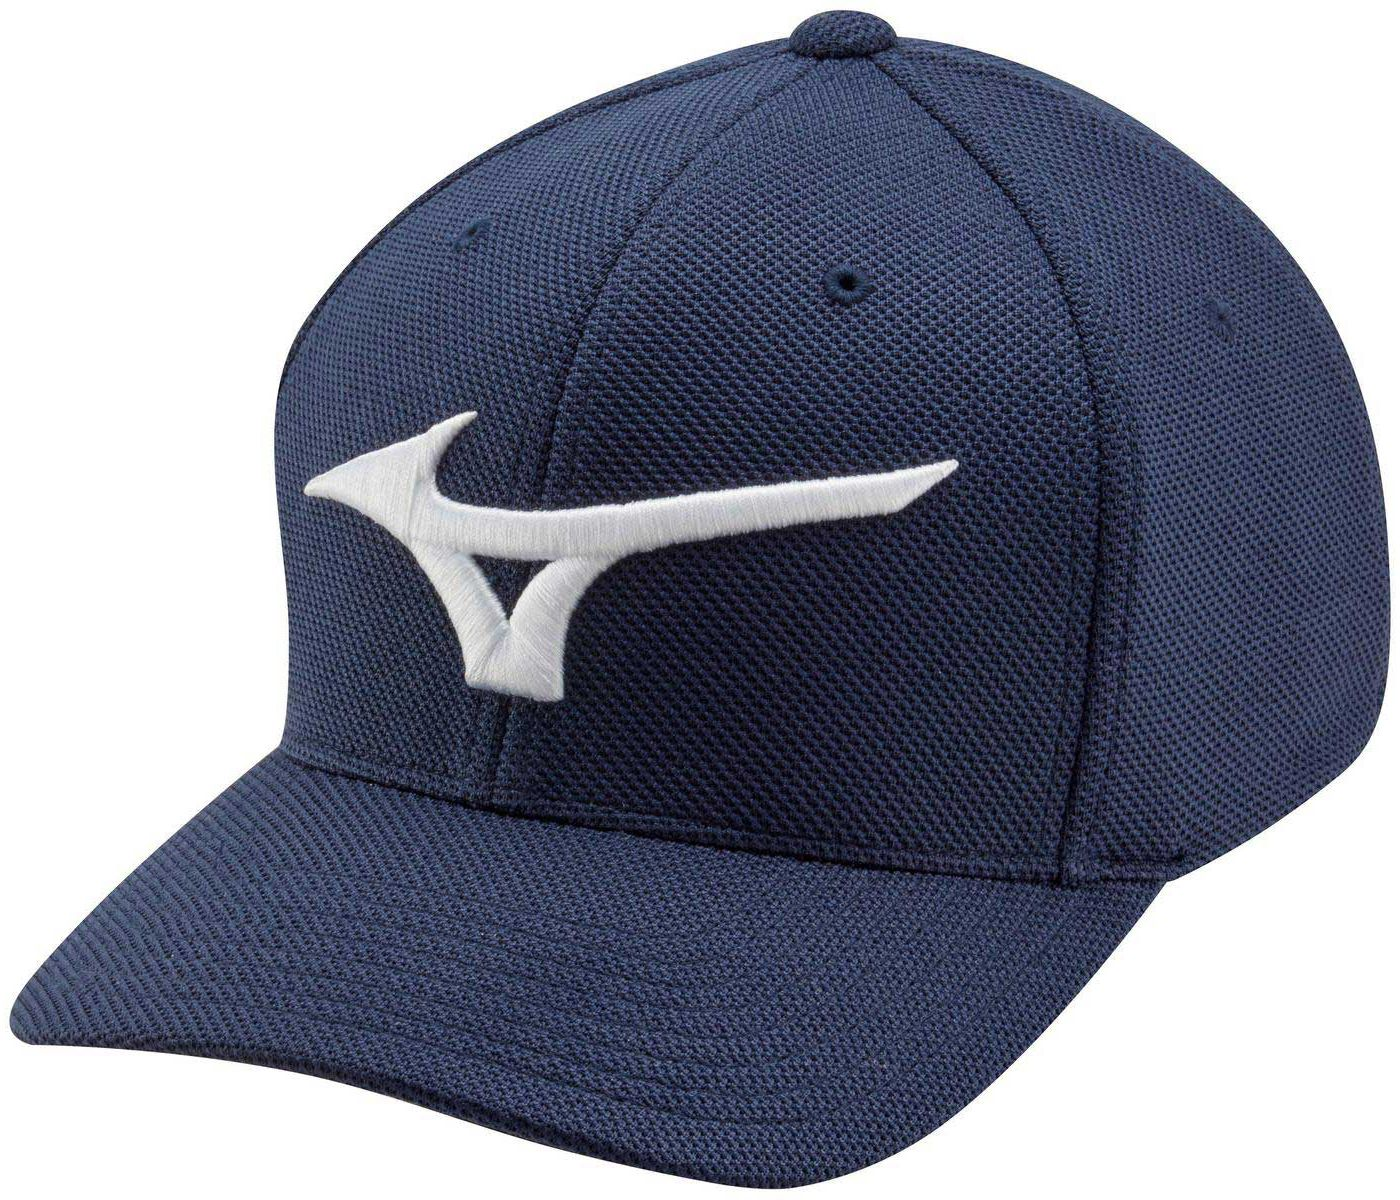 Mizuno Men's Tour Performance Golf Hat